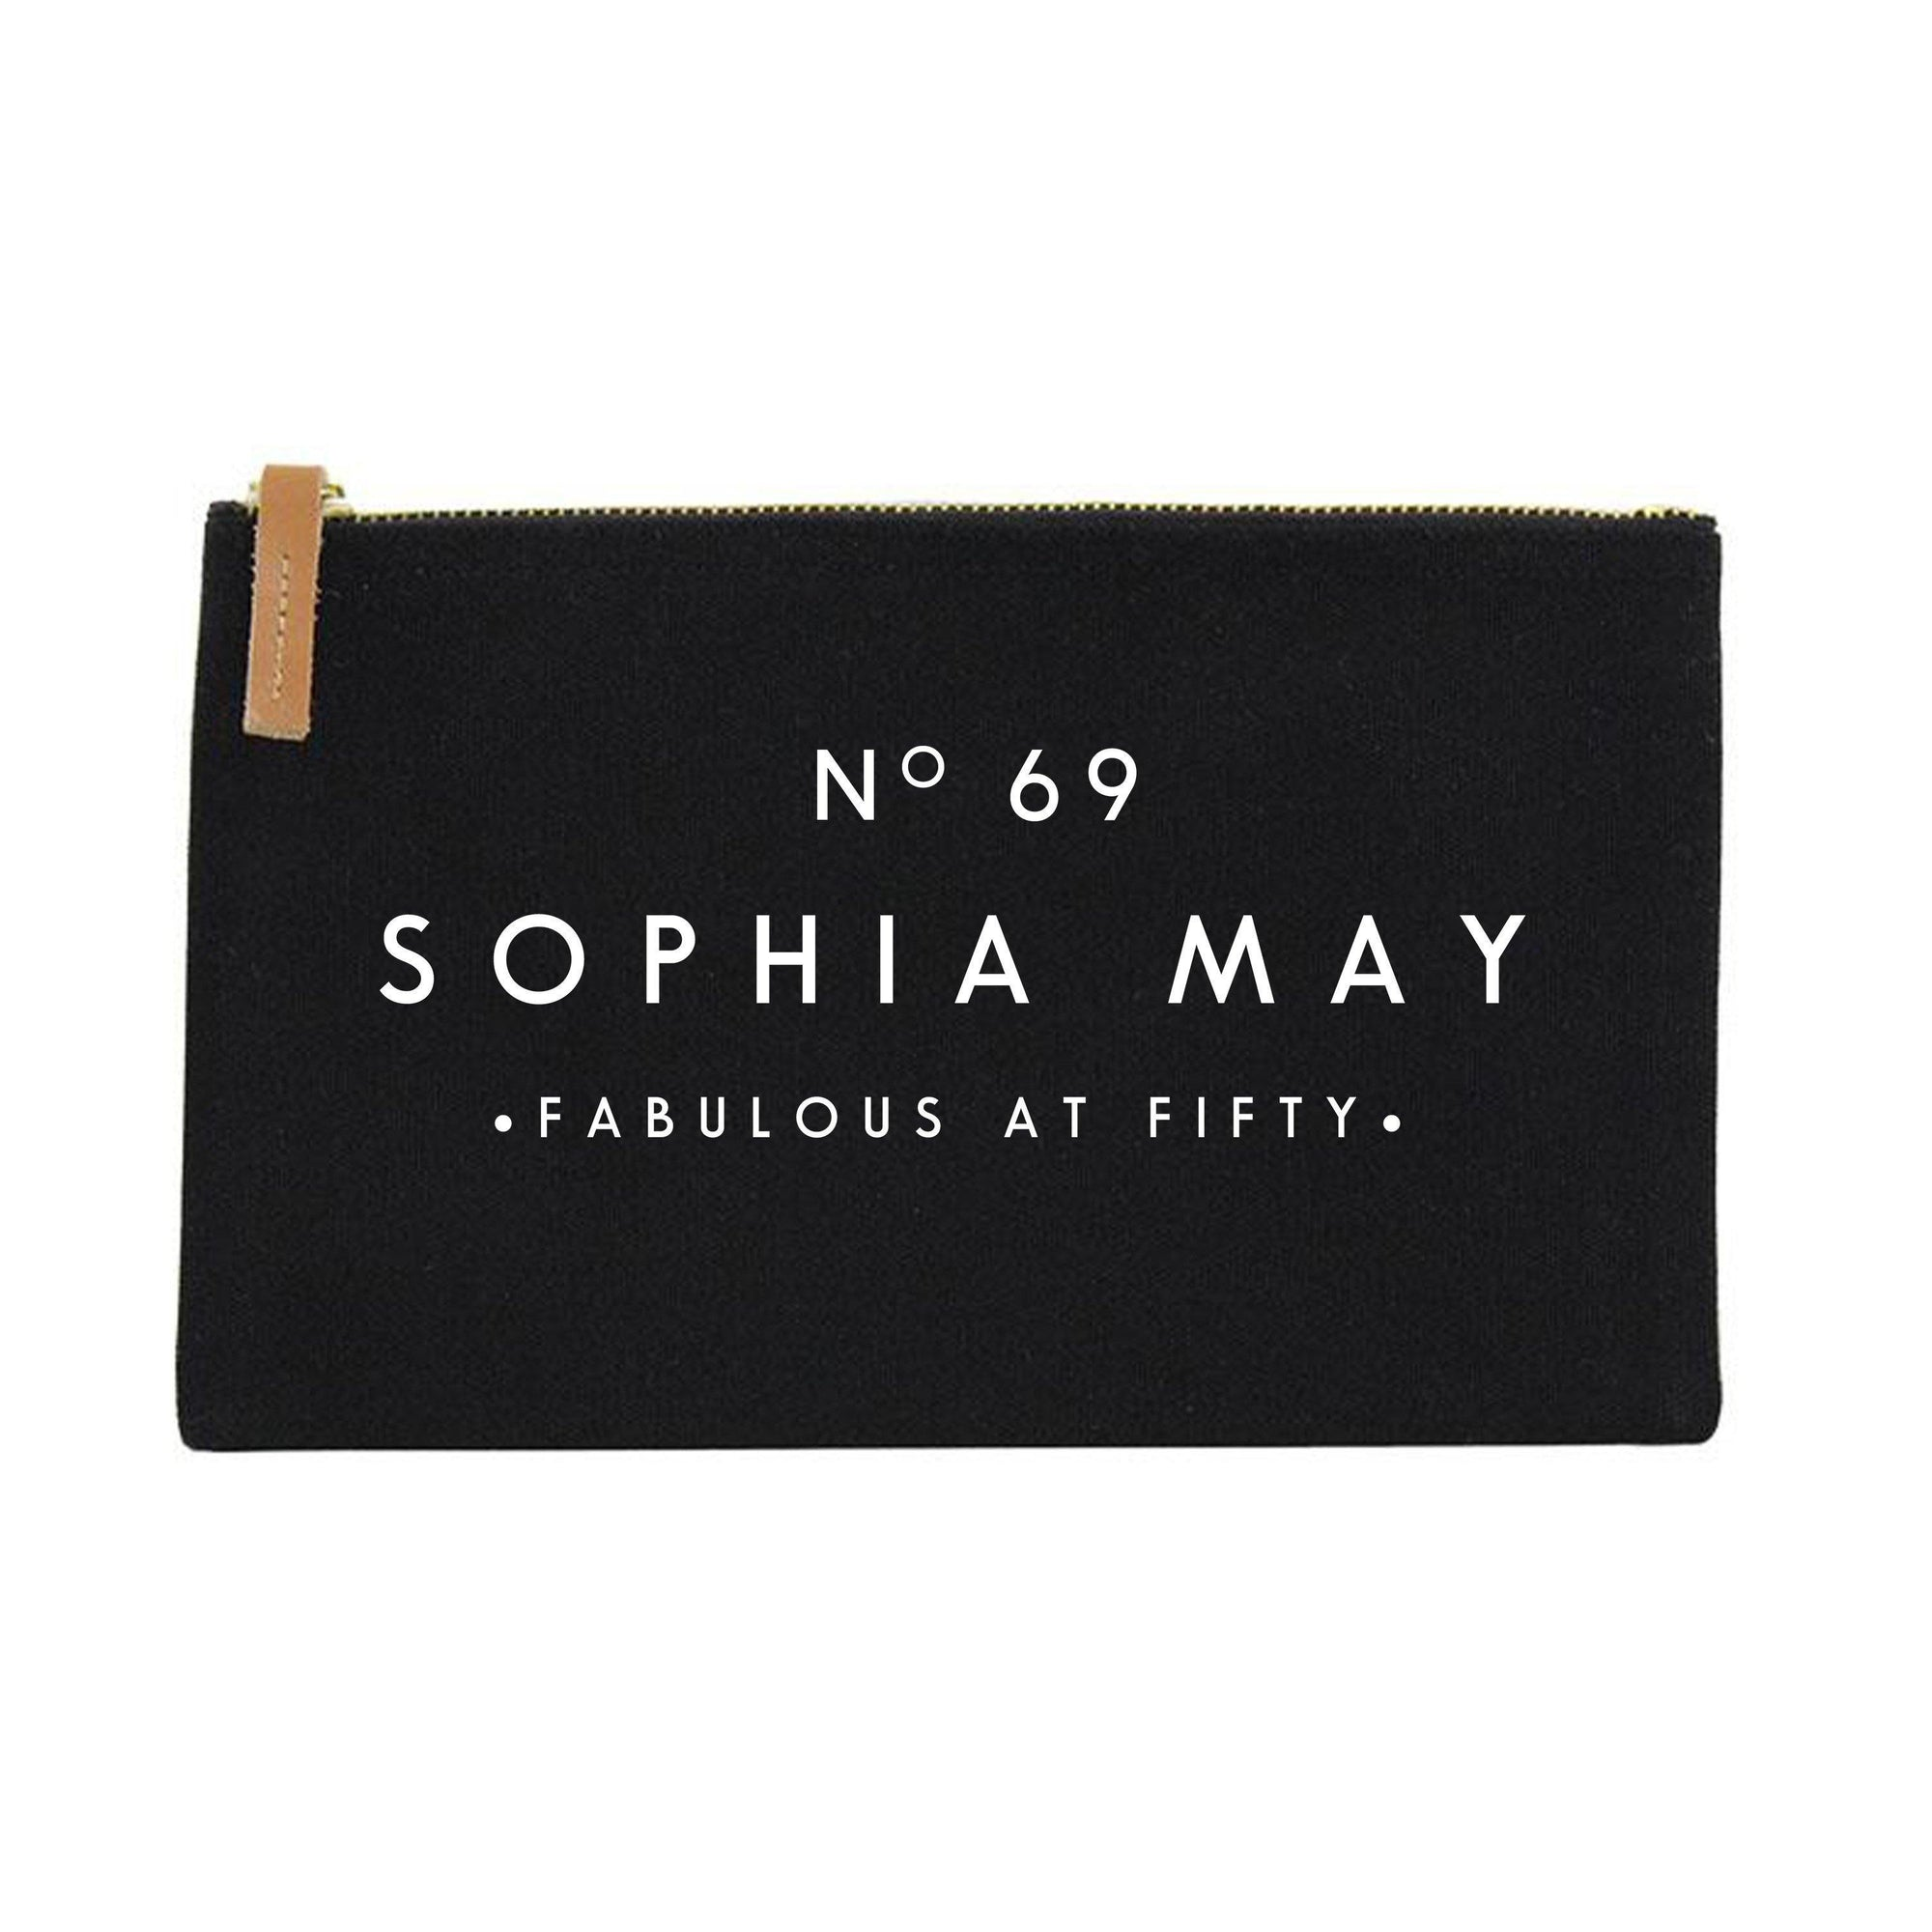 1 Fifty And Fabulous Gift Ideas 50th Birthday Gift